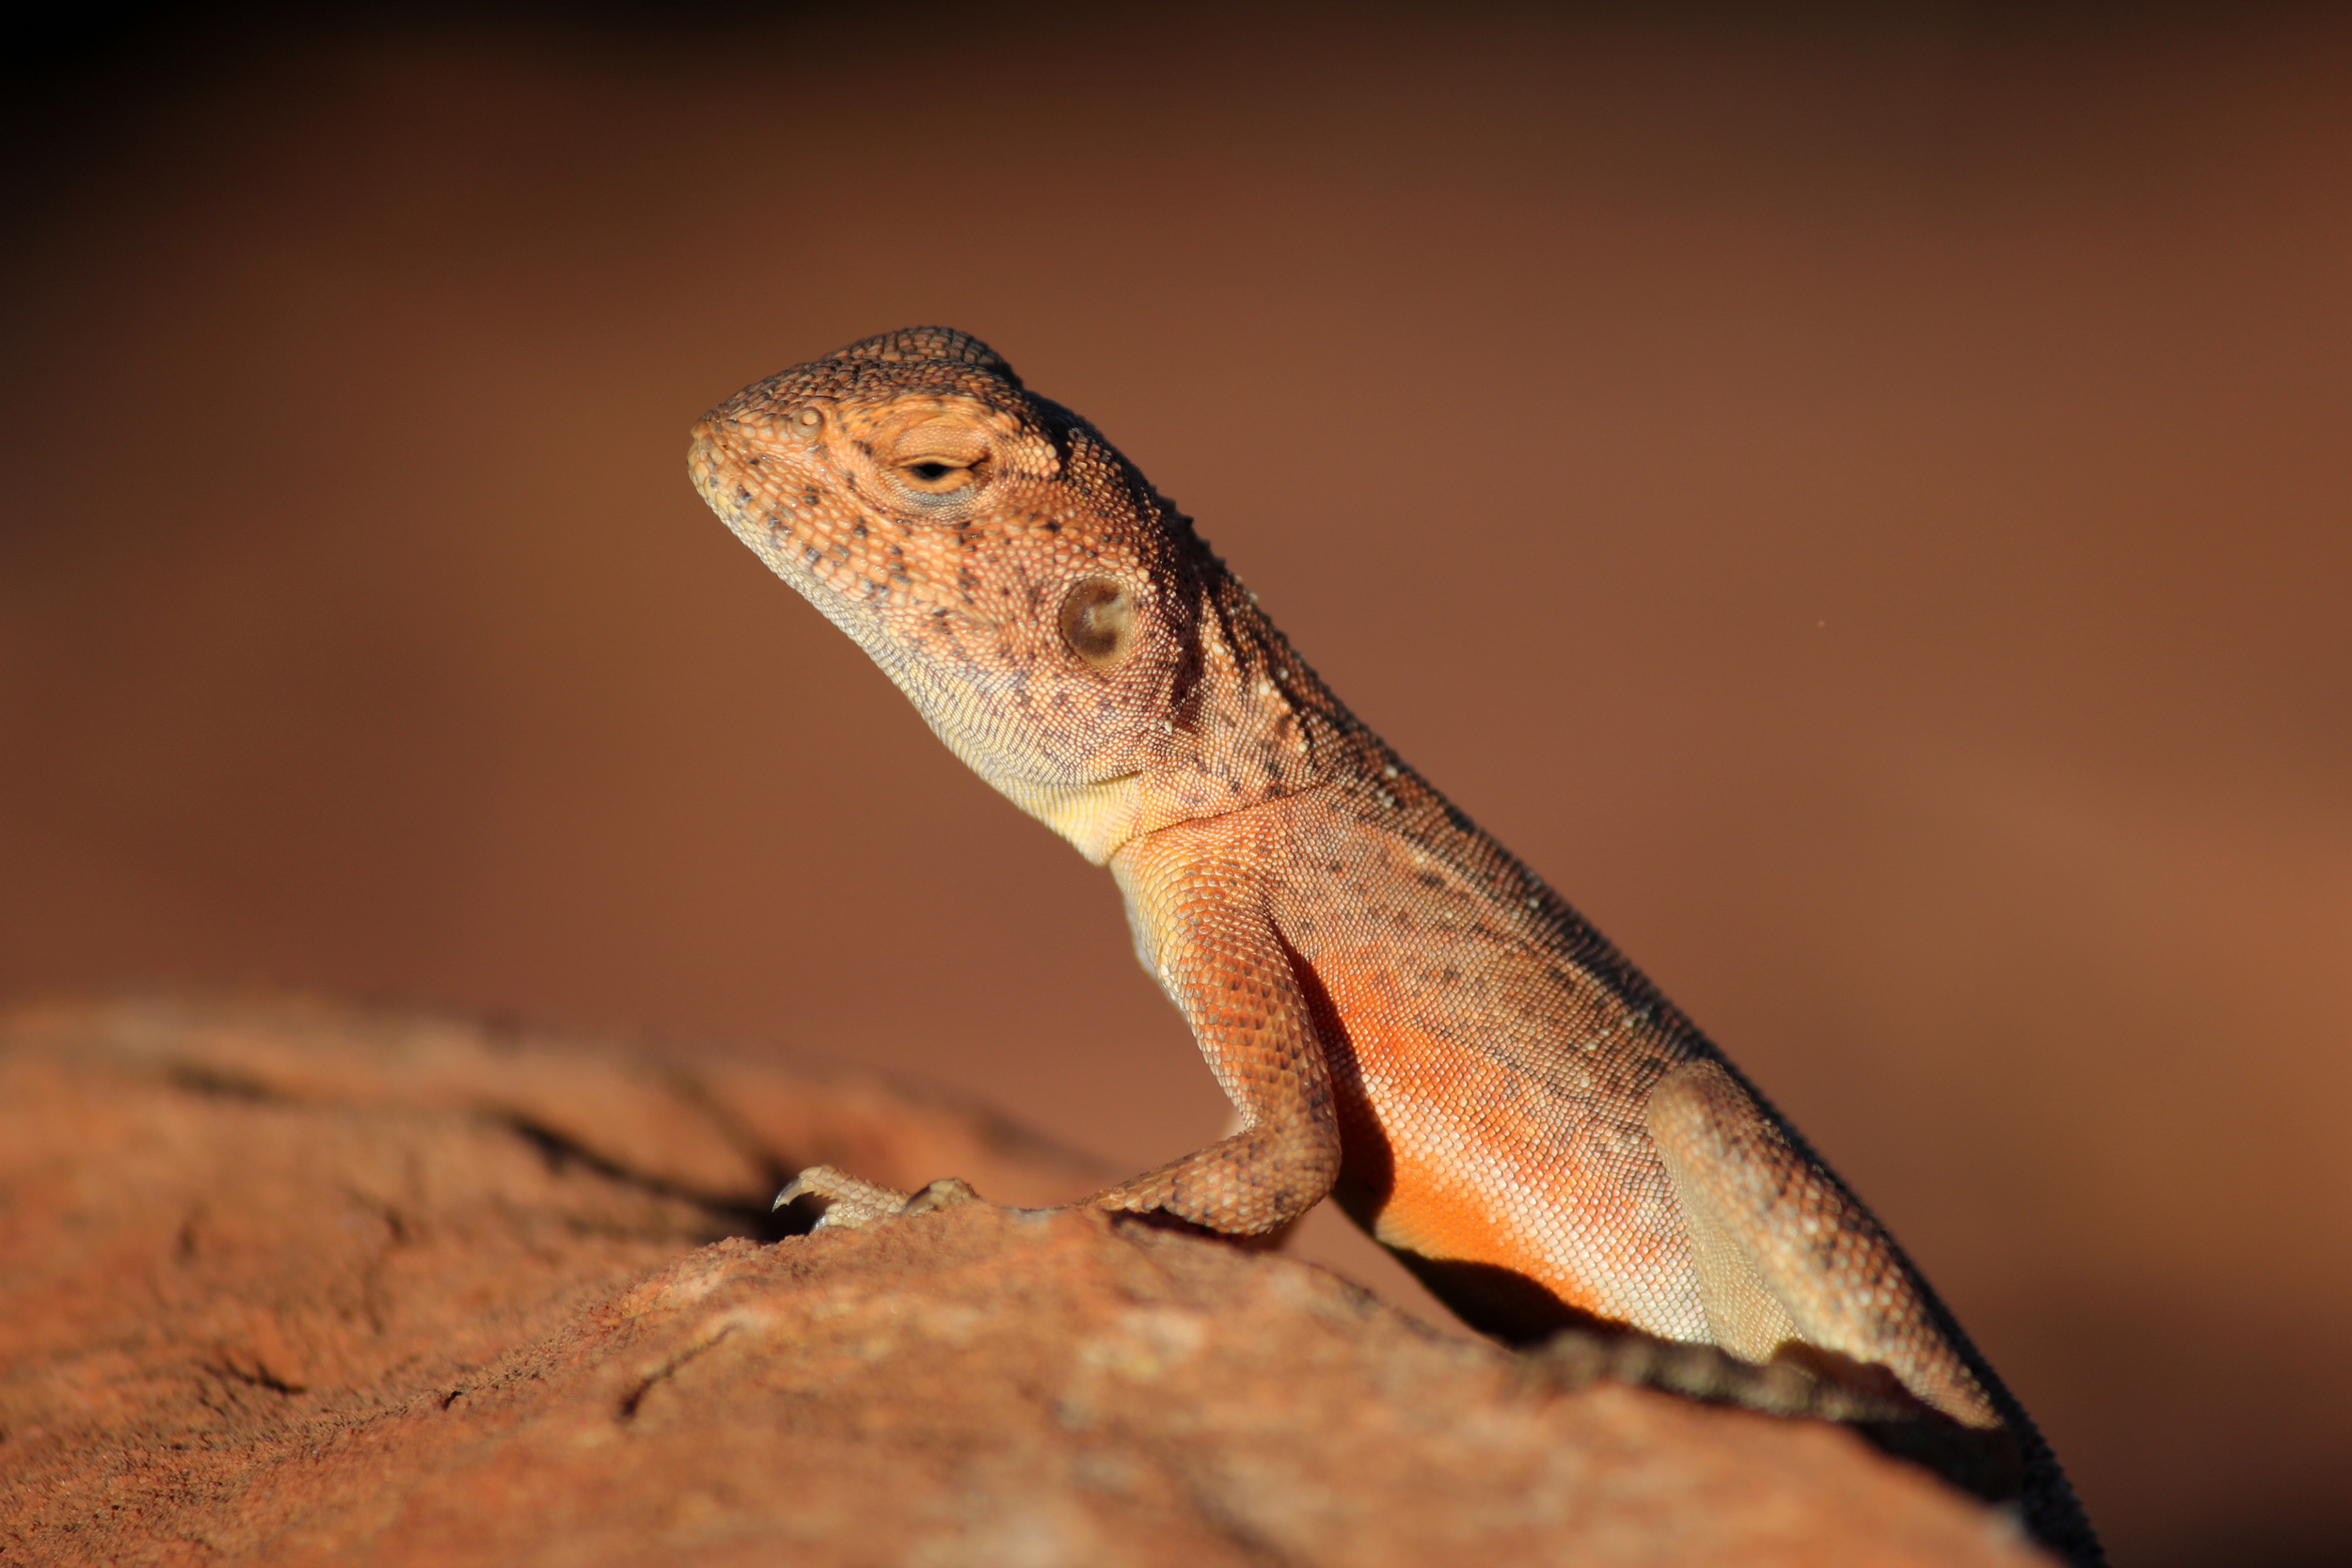 The only sexual dimorphism these ring-tailed dragons showed was some orange on the male's flanks. Watarrka National Park, Northern Territory, 2012. Photo by Rebecca Sullivan.